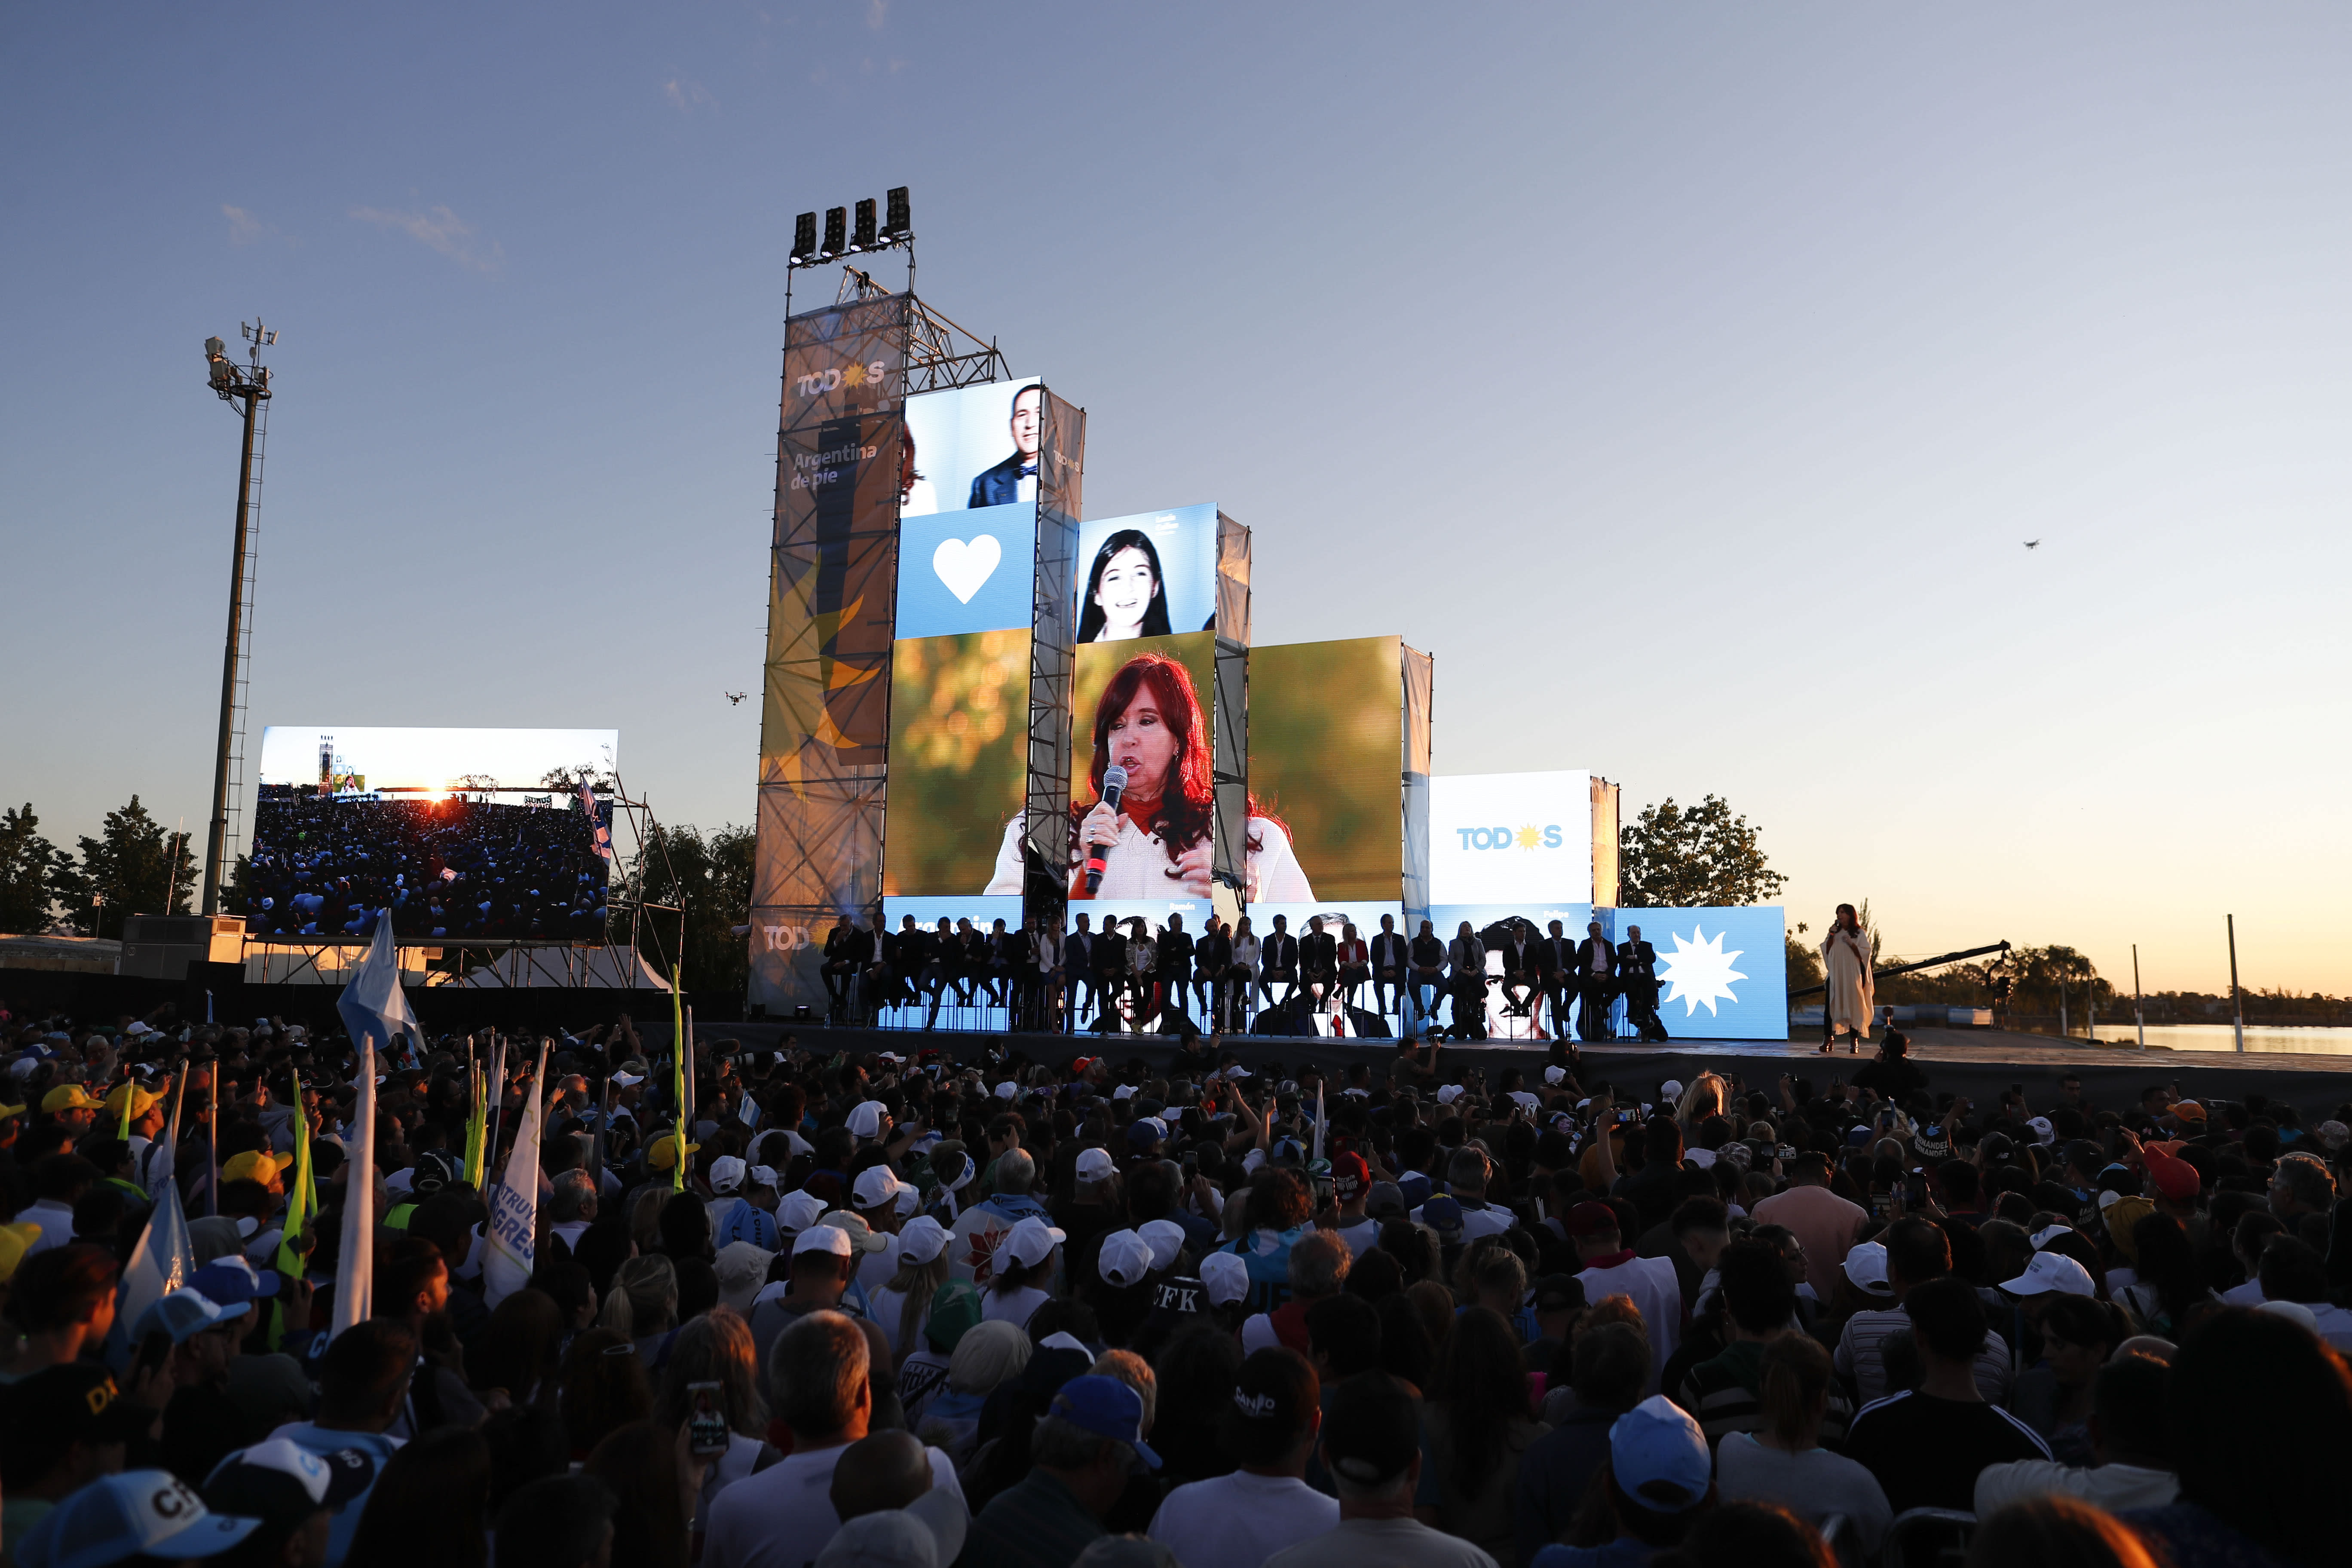 In this Oct. 17, 2019 photo, Cristina Fernandez de Kirchner, Argentina's former president, speaks to supporters during a campaign rally in Santa Rosa, Argentina. Fernandez de Kirchner, who embodies Argentina's enduring cycle of hope and despair, appears close to a return to power, this time as a candidate for vice president. (AP Photo/Natacha Pisarenko)